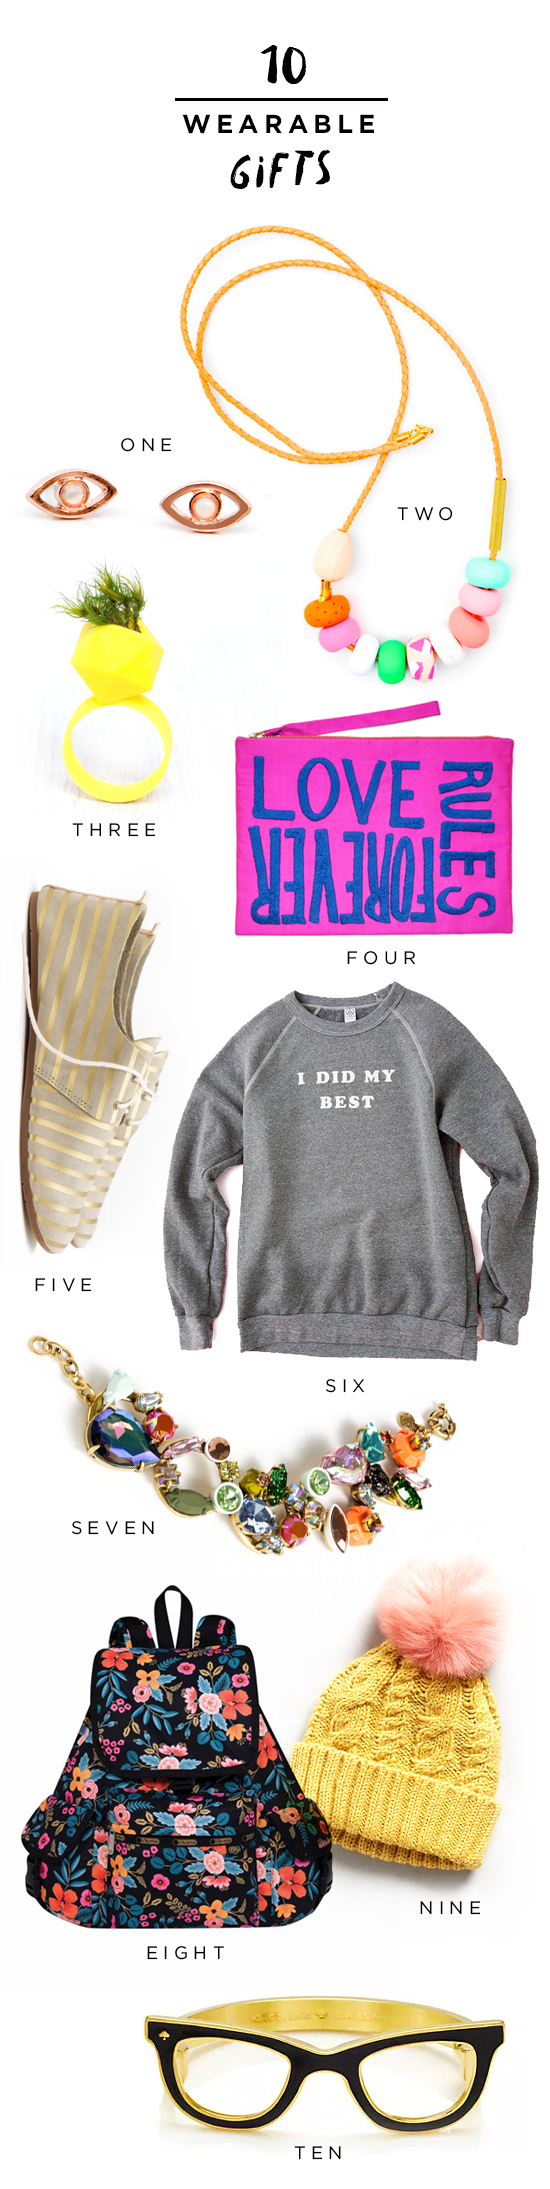 10 Wearable Gifts